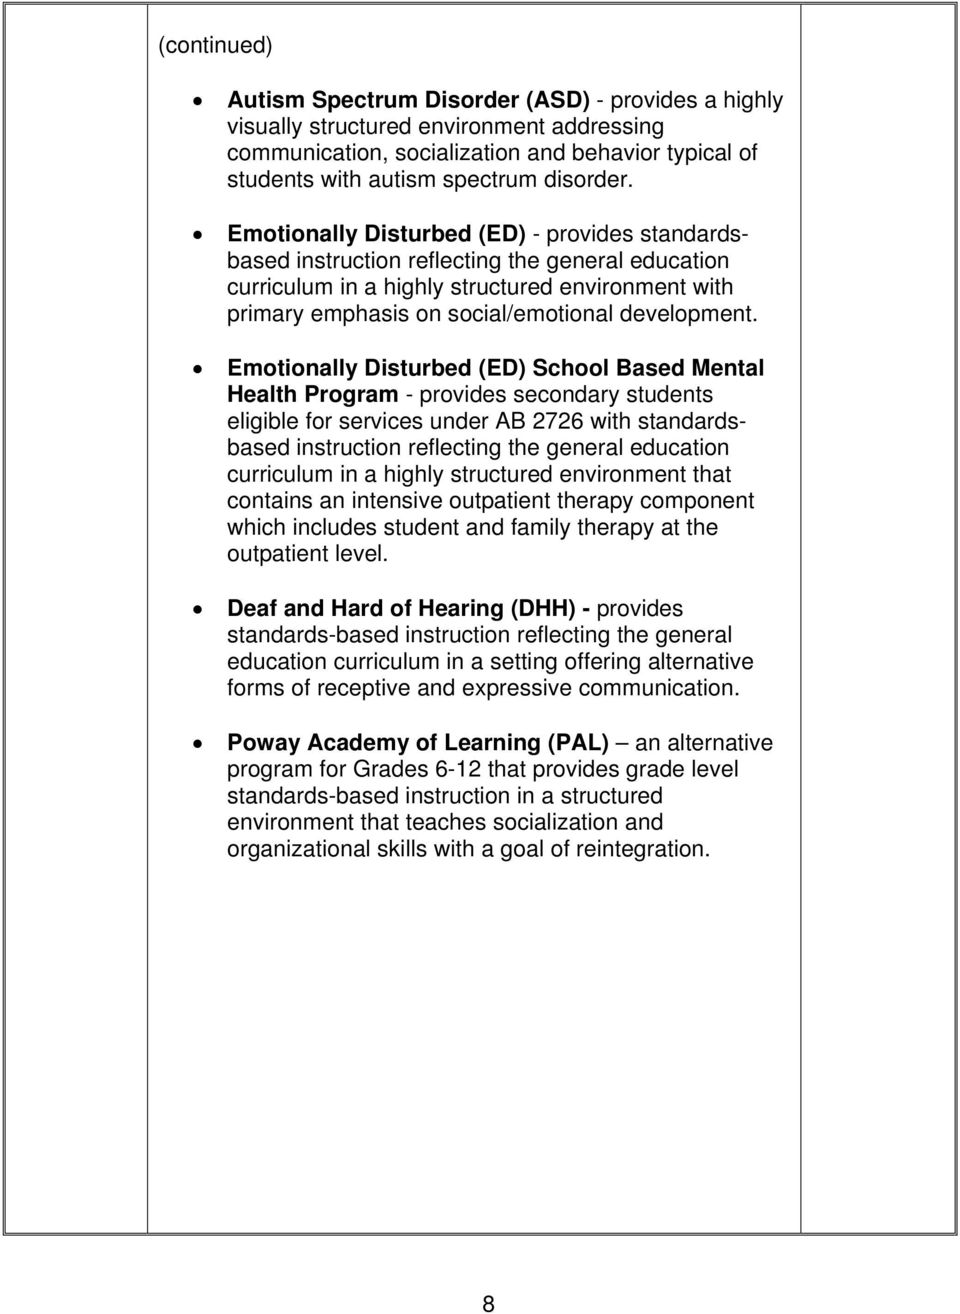 Emotionally Disturbed (ED) School Based Mental Health Program - provides secondary students eligible for services under AB 2726 with standardsbased instruction reflecting the general education